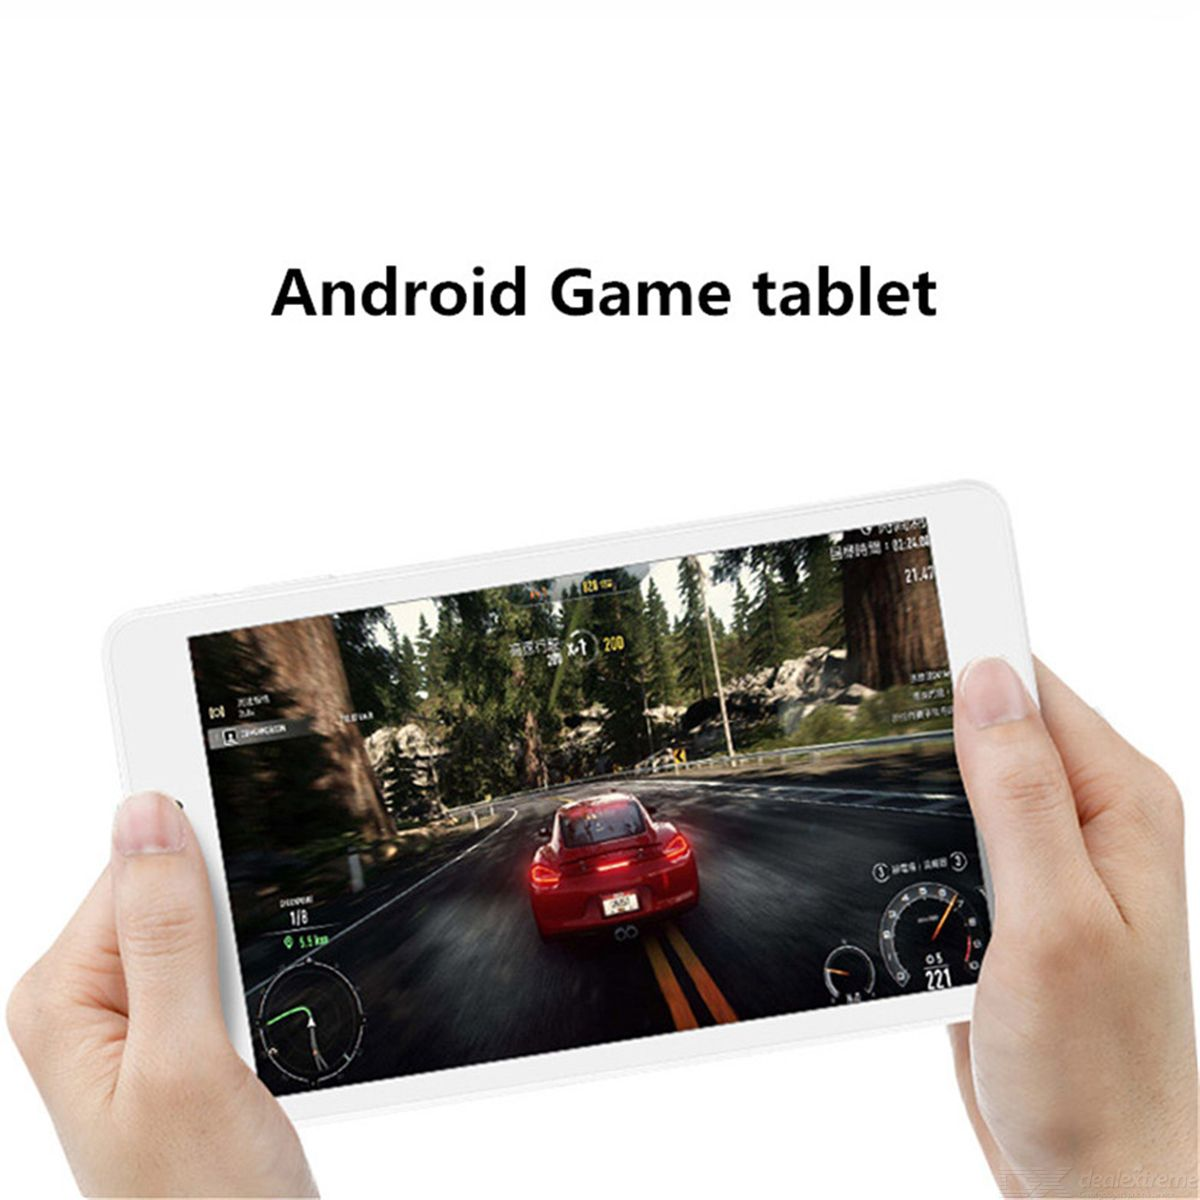 Binai X7 3G Quad-Core Android 6 0 Wi-Fi GPS 3G 7quot Tablet PC with 1GB  RAM, 8GB ROM